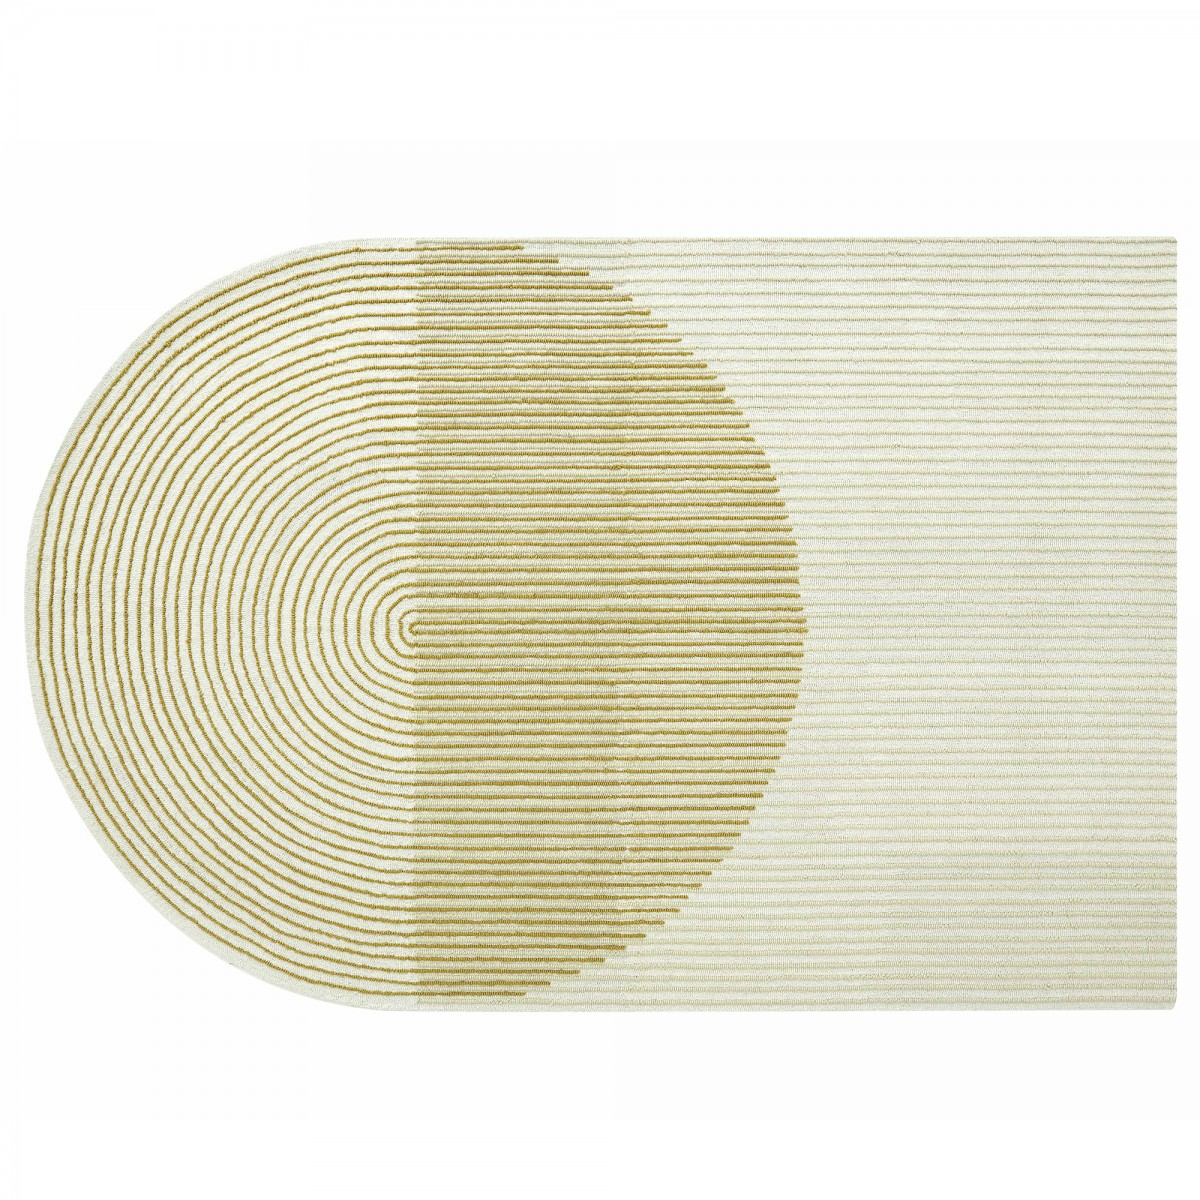 PLY Rug - Yellow by Gan Rugs.